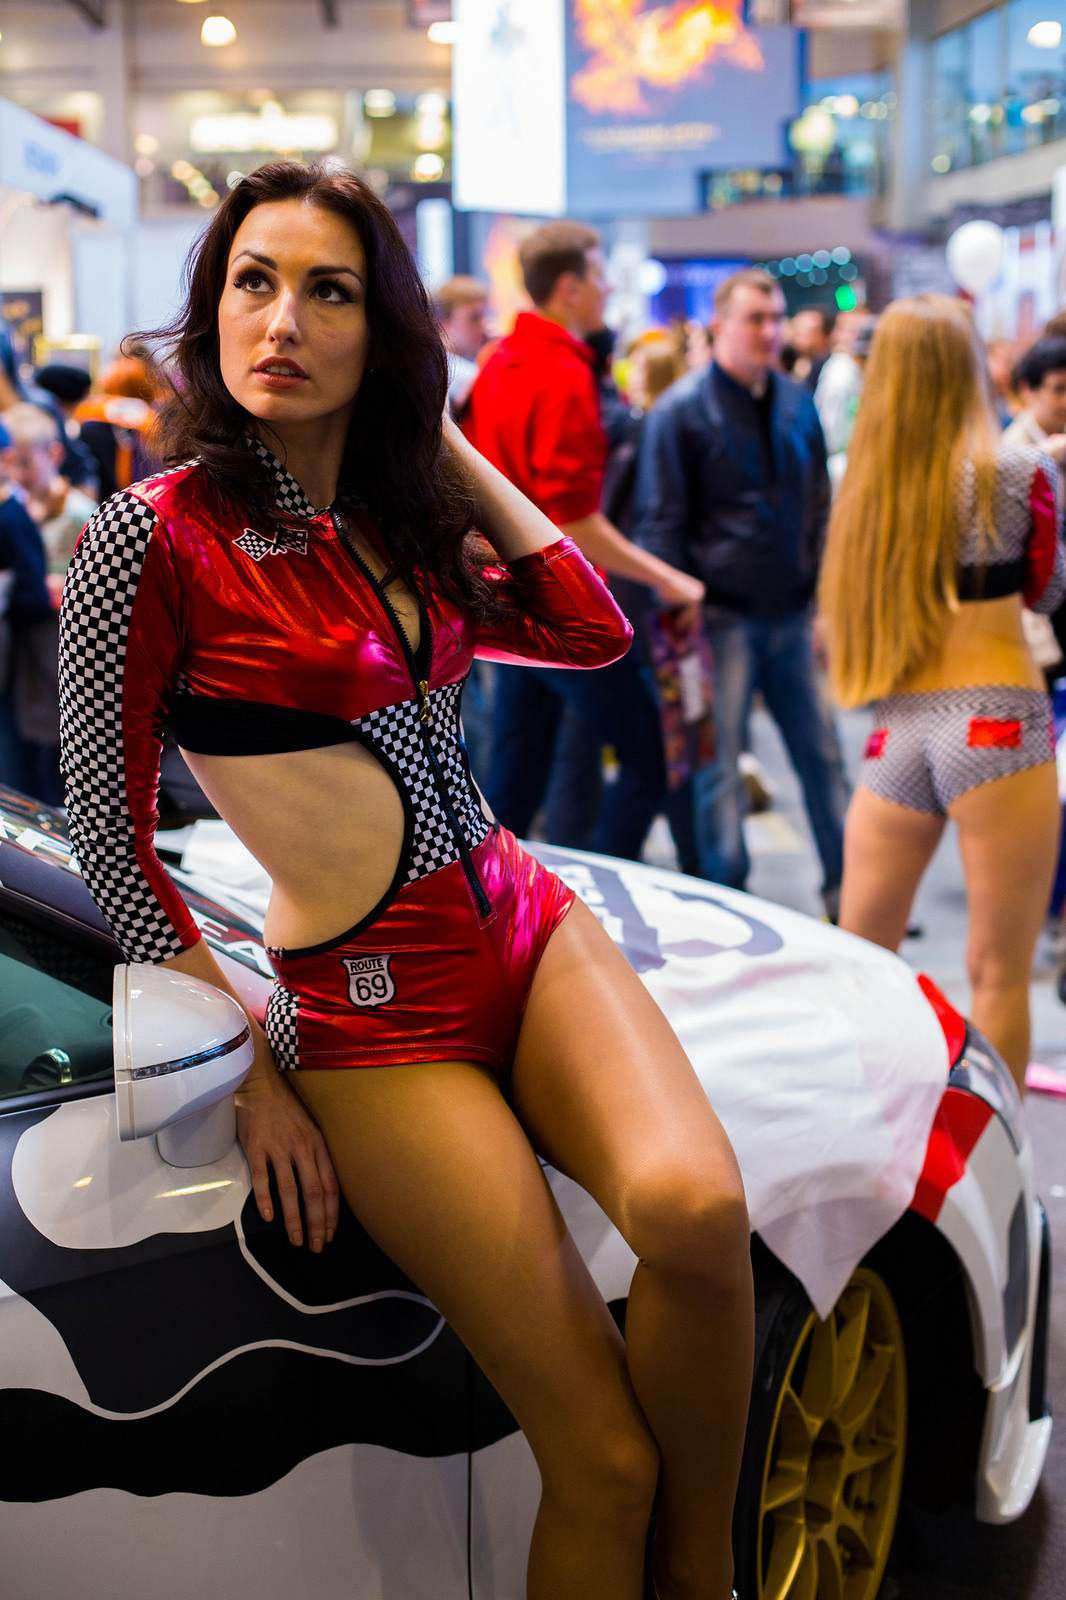 comiccon15 Comic Con Russia and IgroMir exhibition 2015